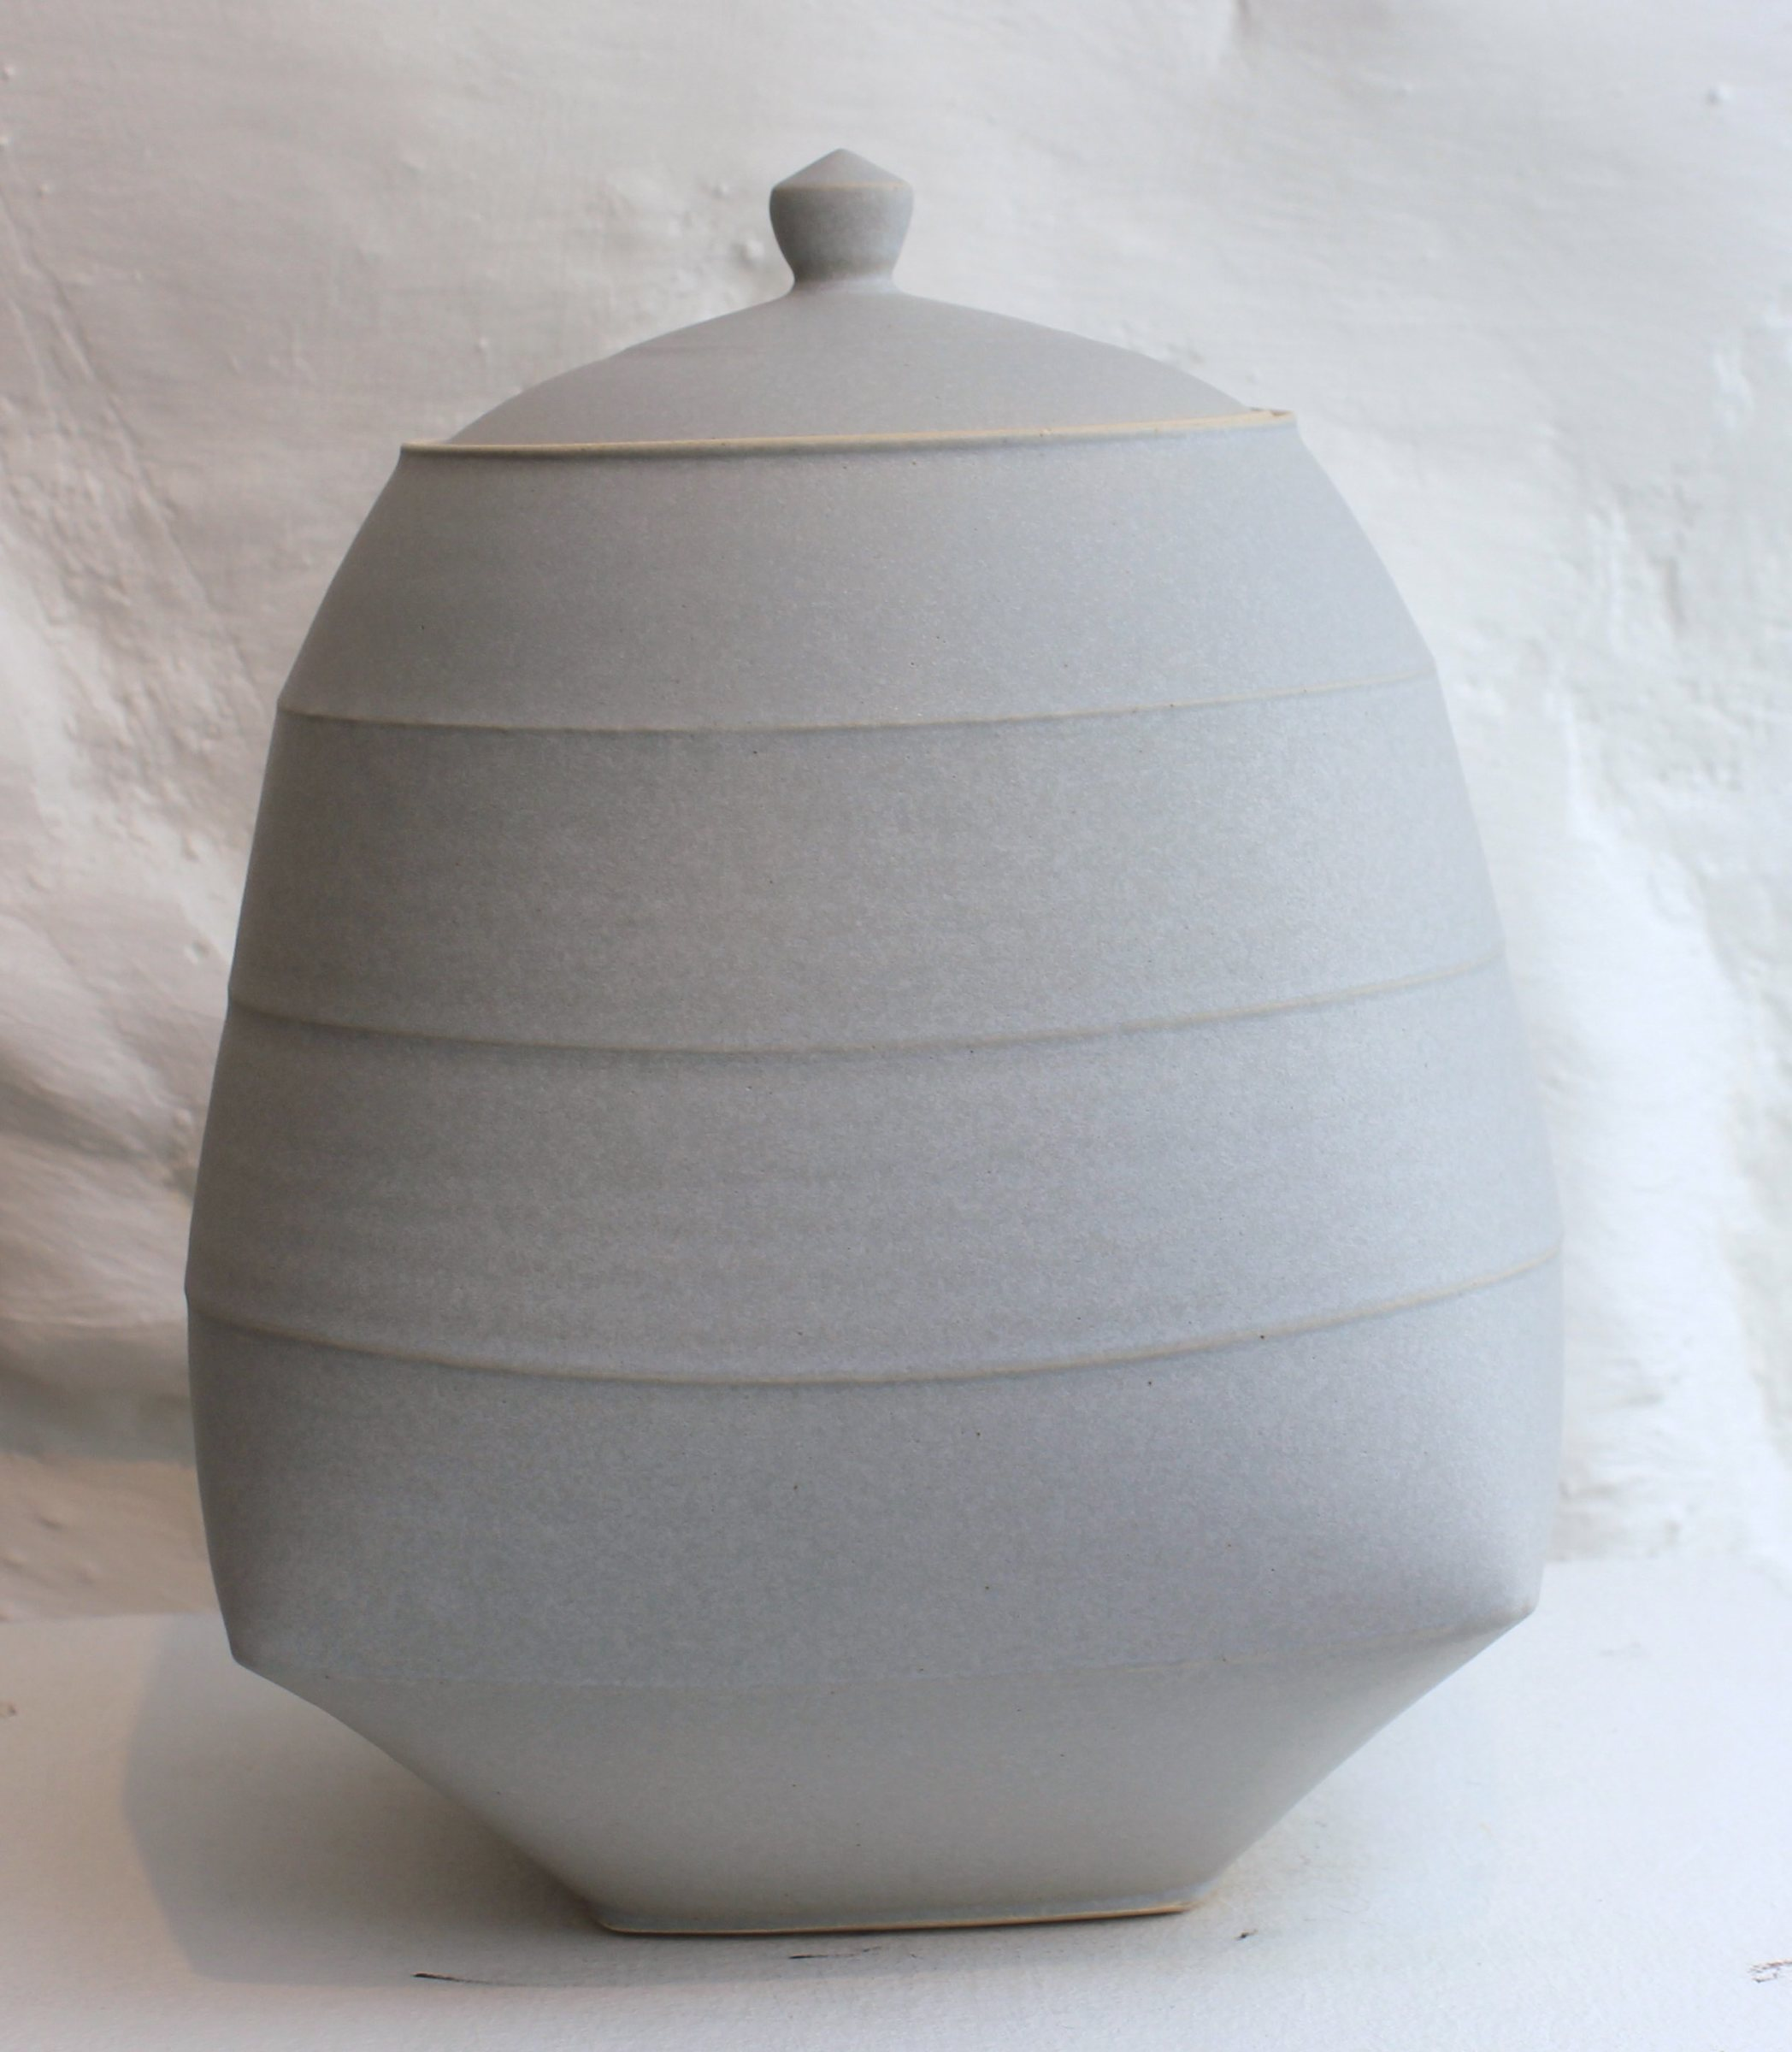 "<span class=""link fancybox-details-link""><a href=""/artists/33-sun-kim/works/5743-sun-kim-large-lidded-jar-2018/"">View Detail Page</a></span><div class=""artist""><strong>Sun Kim</strong></div> <div class=""title""><em>Large Lidded Jar</em>, 2018</div> <div class=""signed_and_dated"">stamped by the artist</div> <div class=""medium"">porcelain</div> <div class=""dimensions"">23 x 15 x 11 cm<br /> 9 1/8 x 5 7/8 x 4 3/8 inches</div><div class=""copyright_line"">OwnArt: £ 54 x 10 Months, 0% APR</div>"